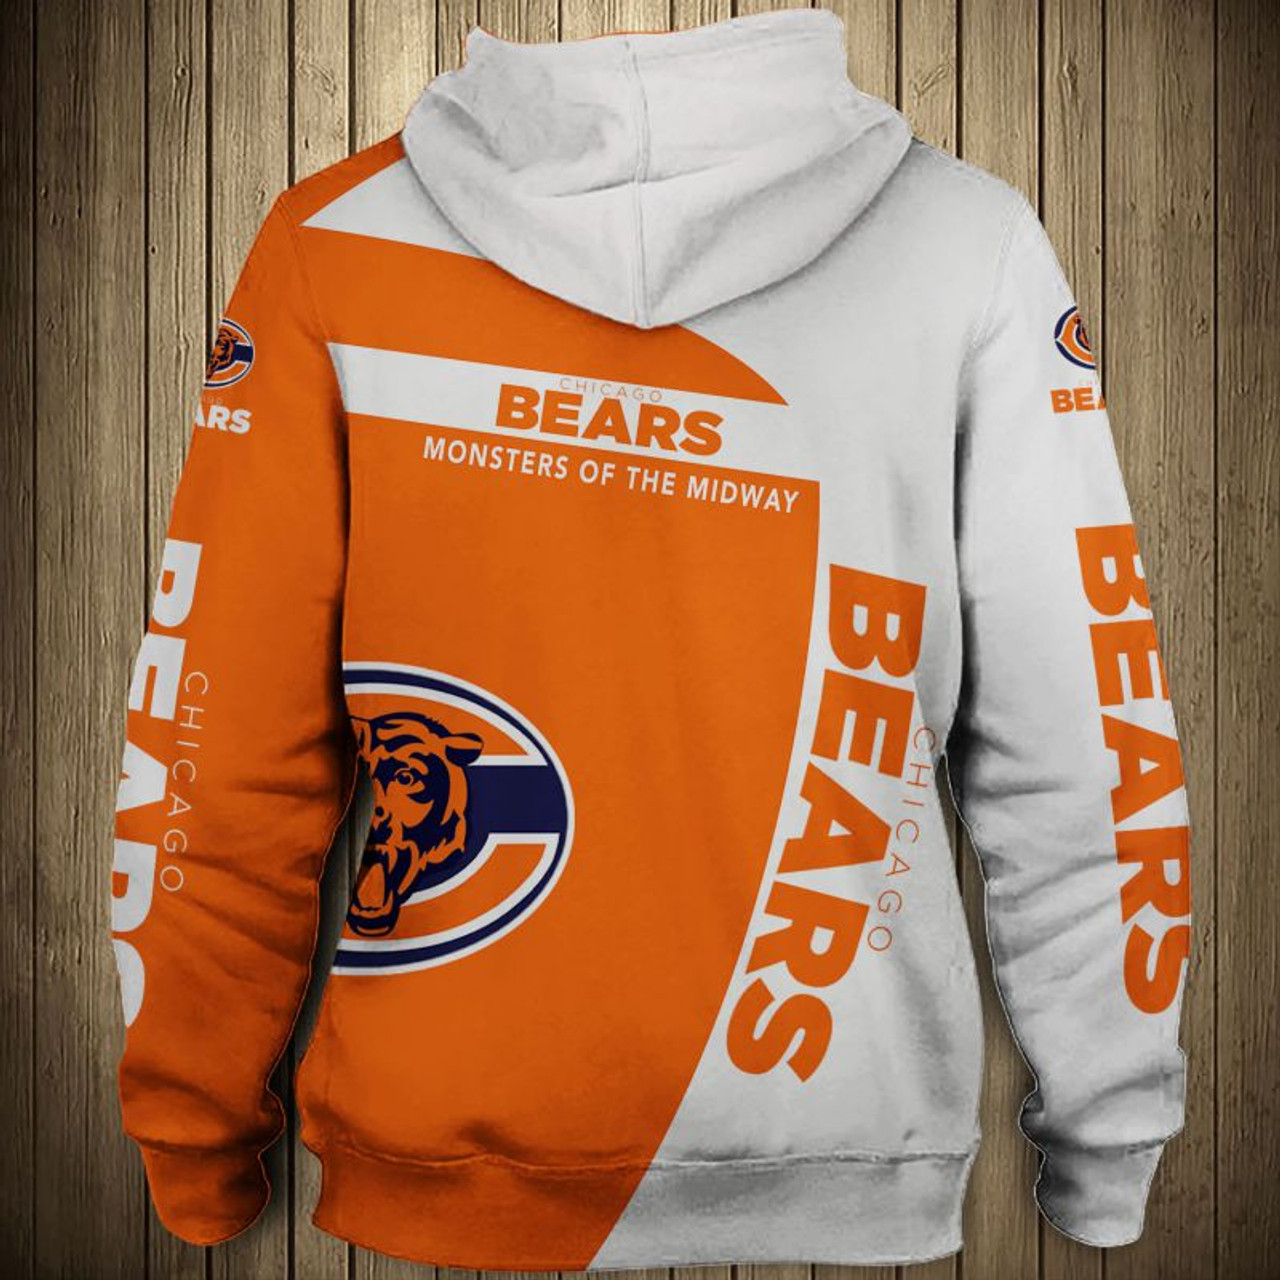 **(OFFICIAL-N.F.L.CHICAGO-BEARS-FASHION-PULLOVER-TEAM-HOODIES/CUSTOM-3D-GRAPHIC-PRINTED-DETAILED-DOUBLE-SIDED-DESIGN/CLASSIC-OFFICIAL-BEARS-TEAM-LOGOS & OFFICIAL-BEARS-TEAM-COLORS/WARM-PREMIUM-OFFICIAL-N.F.L.BEARS-TEAM/GAME-DAY-PULLOVER-HOODIES)**